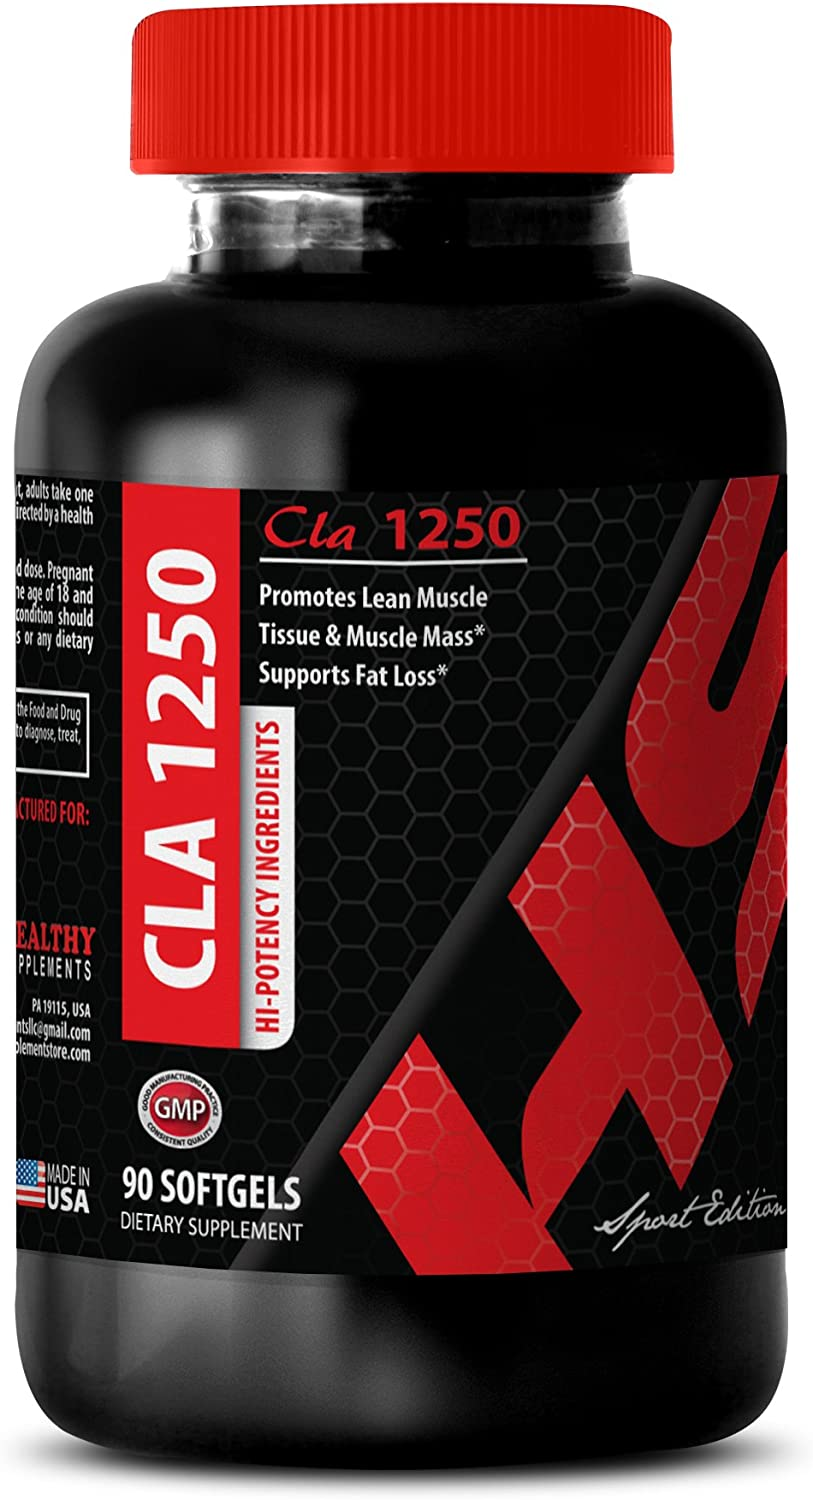 mart Super popular specialty store Cla Weight Loss - CONJUGATED LINOLEIC MG Acid 1250 Promote CLA